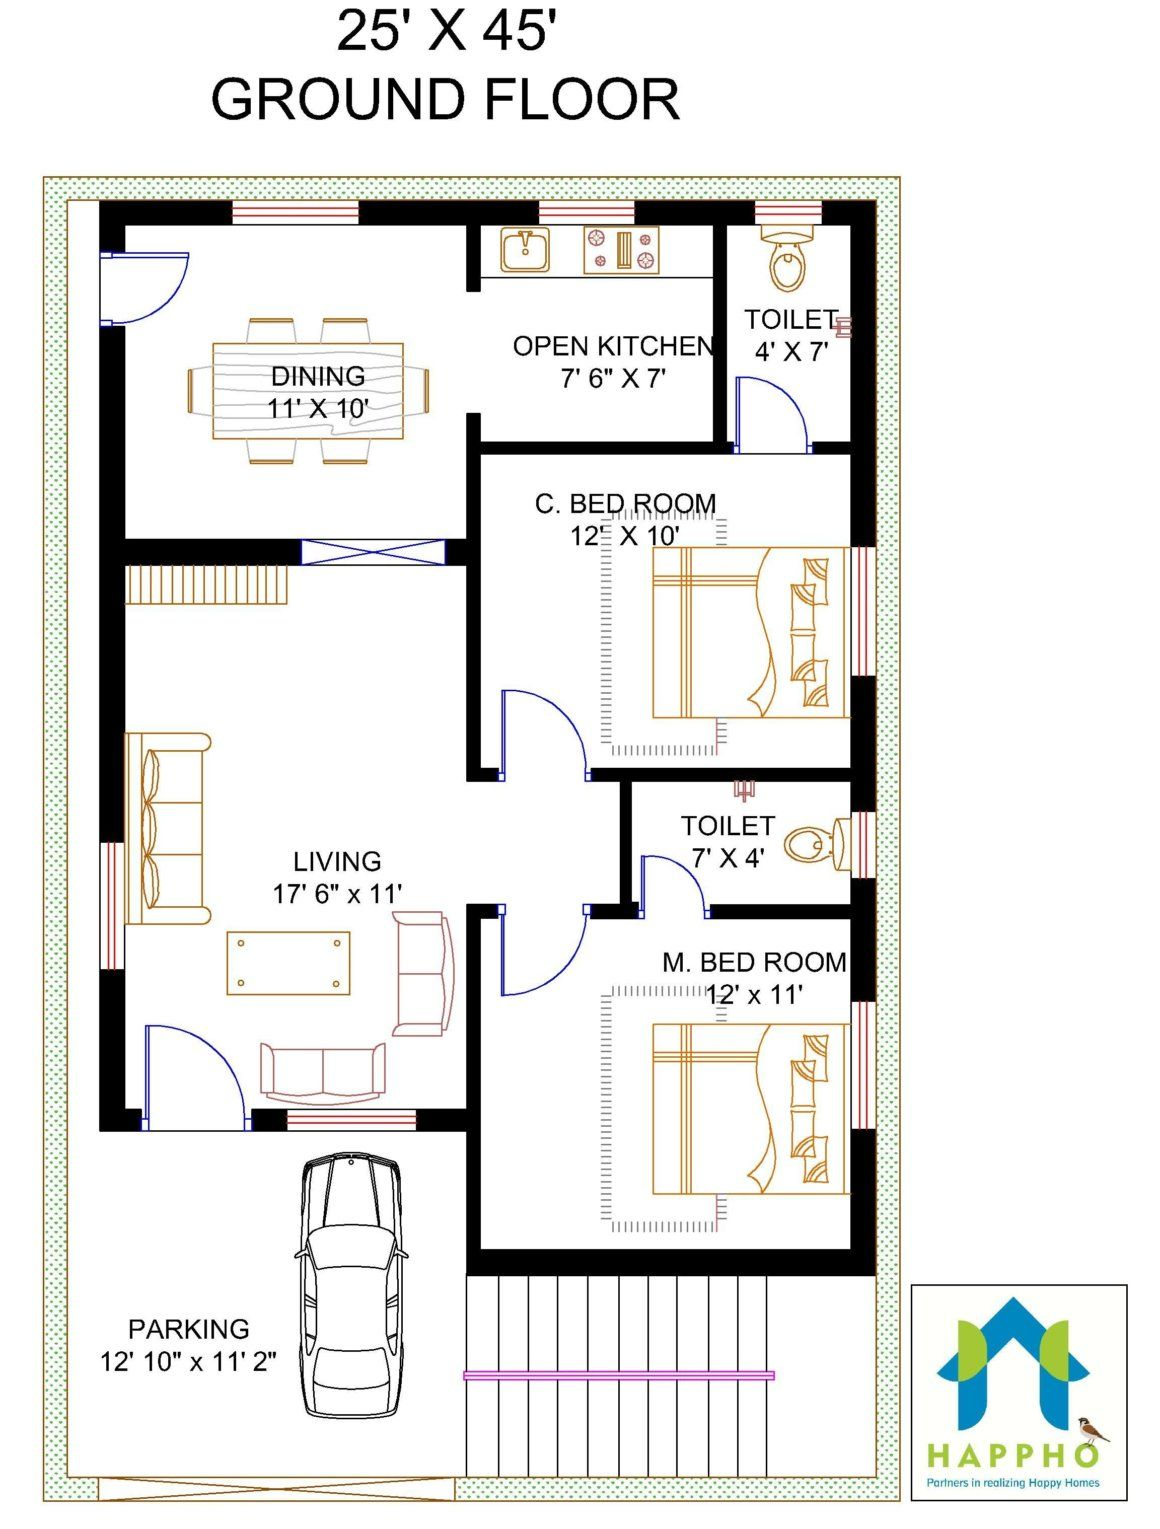 Top 40 Unique Floor Plan Ideas For Different Areas Engineering Discoveries In 2020 20x40 House Plans Open Concept House Plans Bedroom House Plans